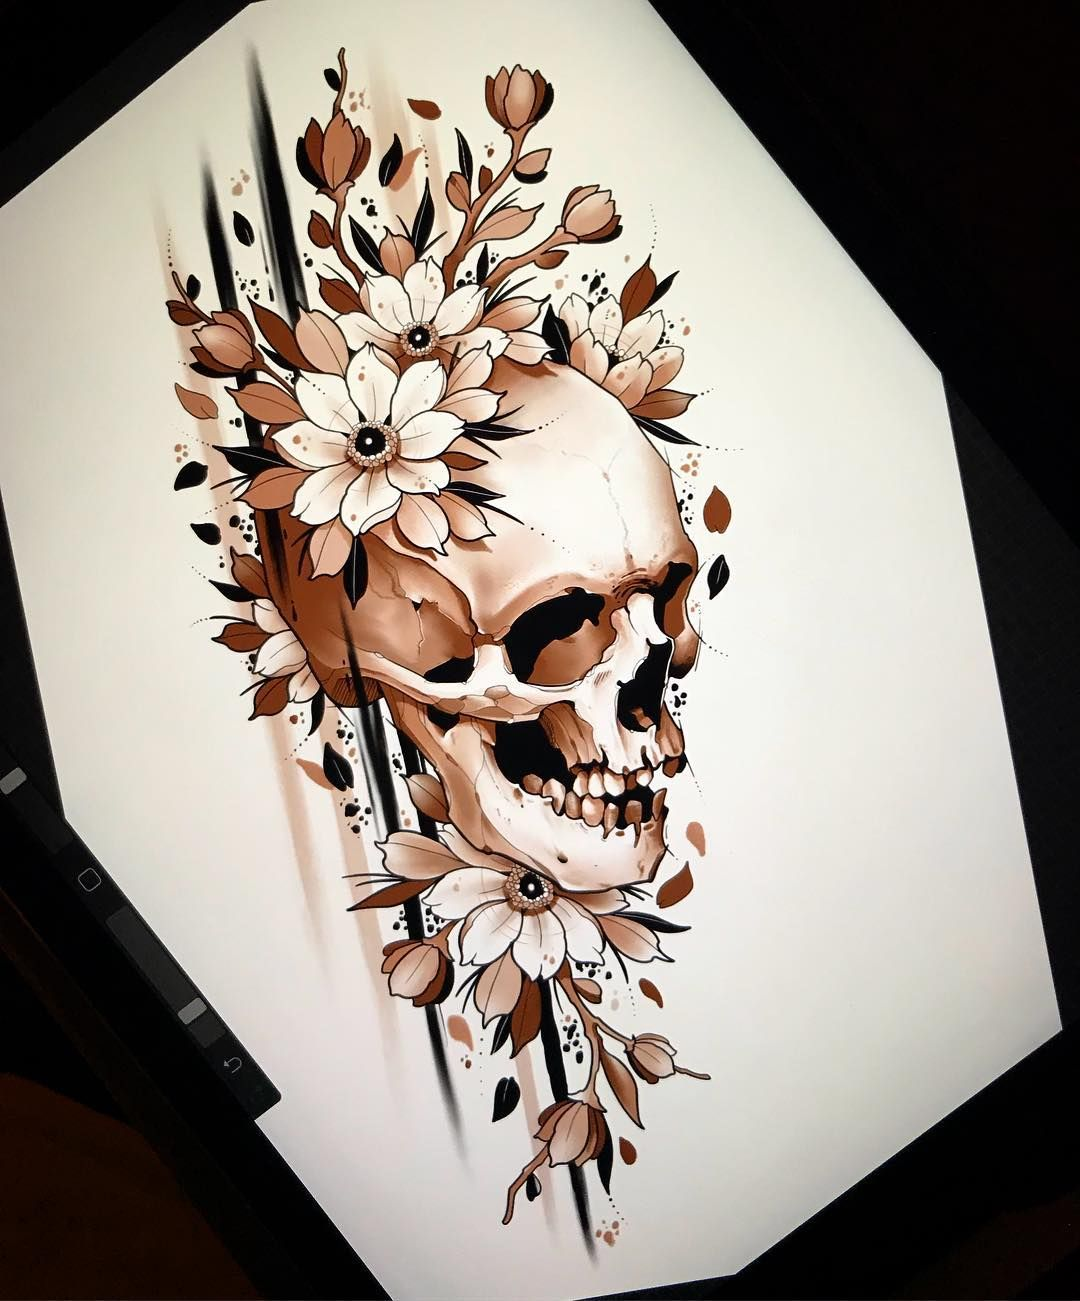 Tattoo Designs Up For Grabs: New Design, Up For Grabs! I Really Like This Drawing